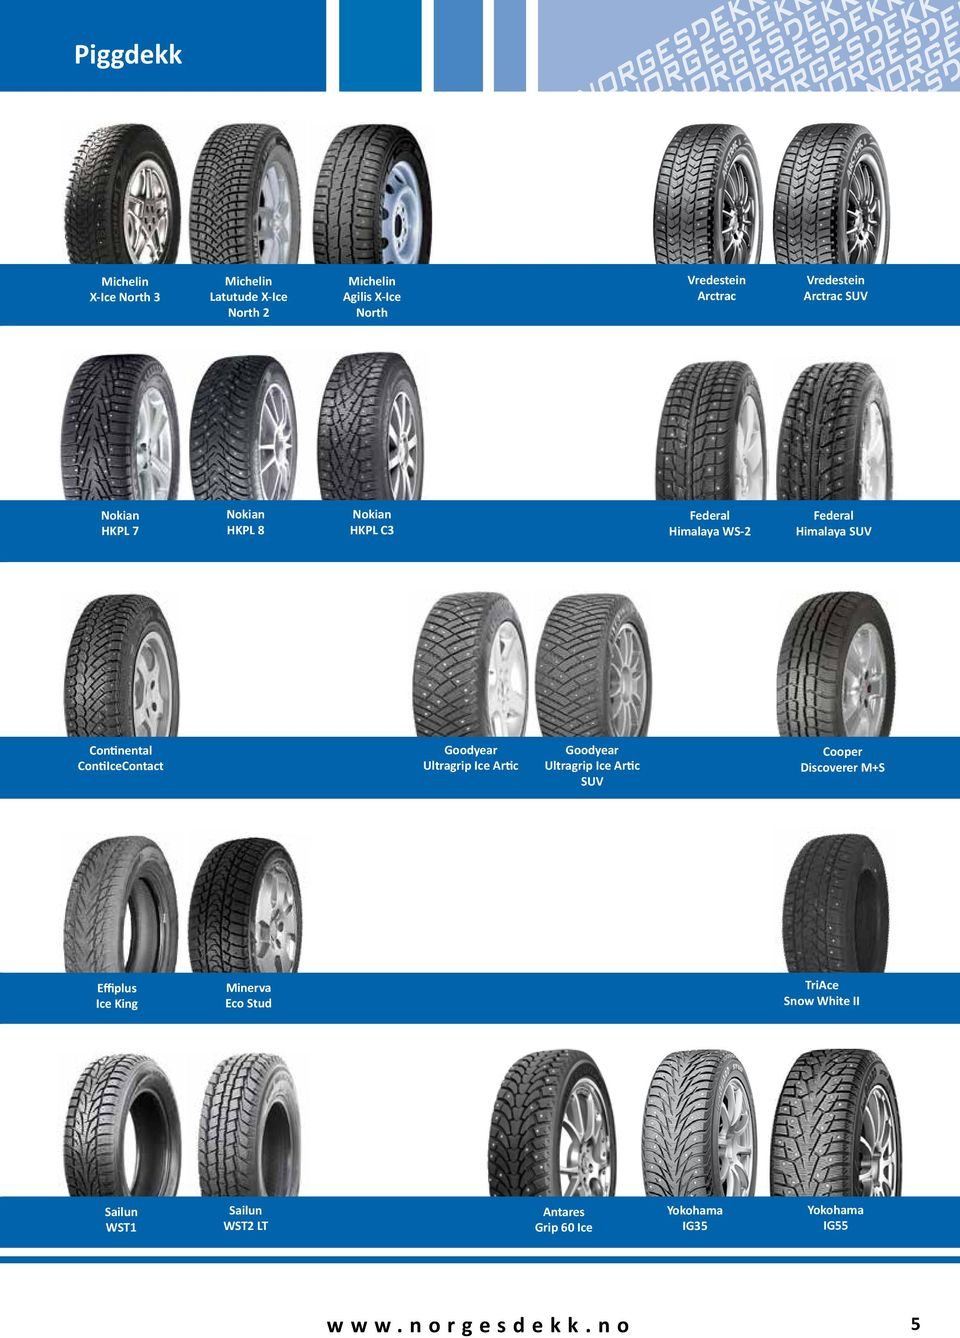 Continental ContiIceContact Goodyear Ultragrip Ice Artic Goodyear Ultragrip Ice Artic SUV Cooper Discoverer M+S